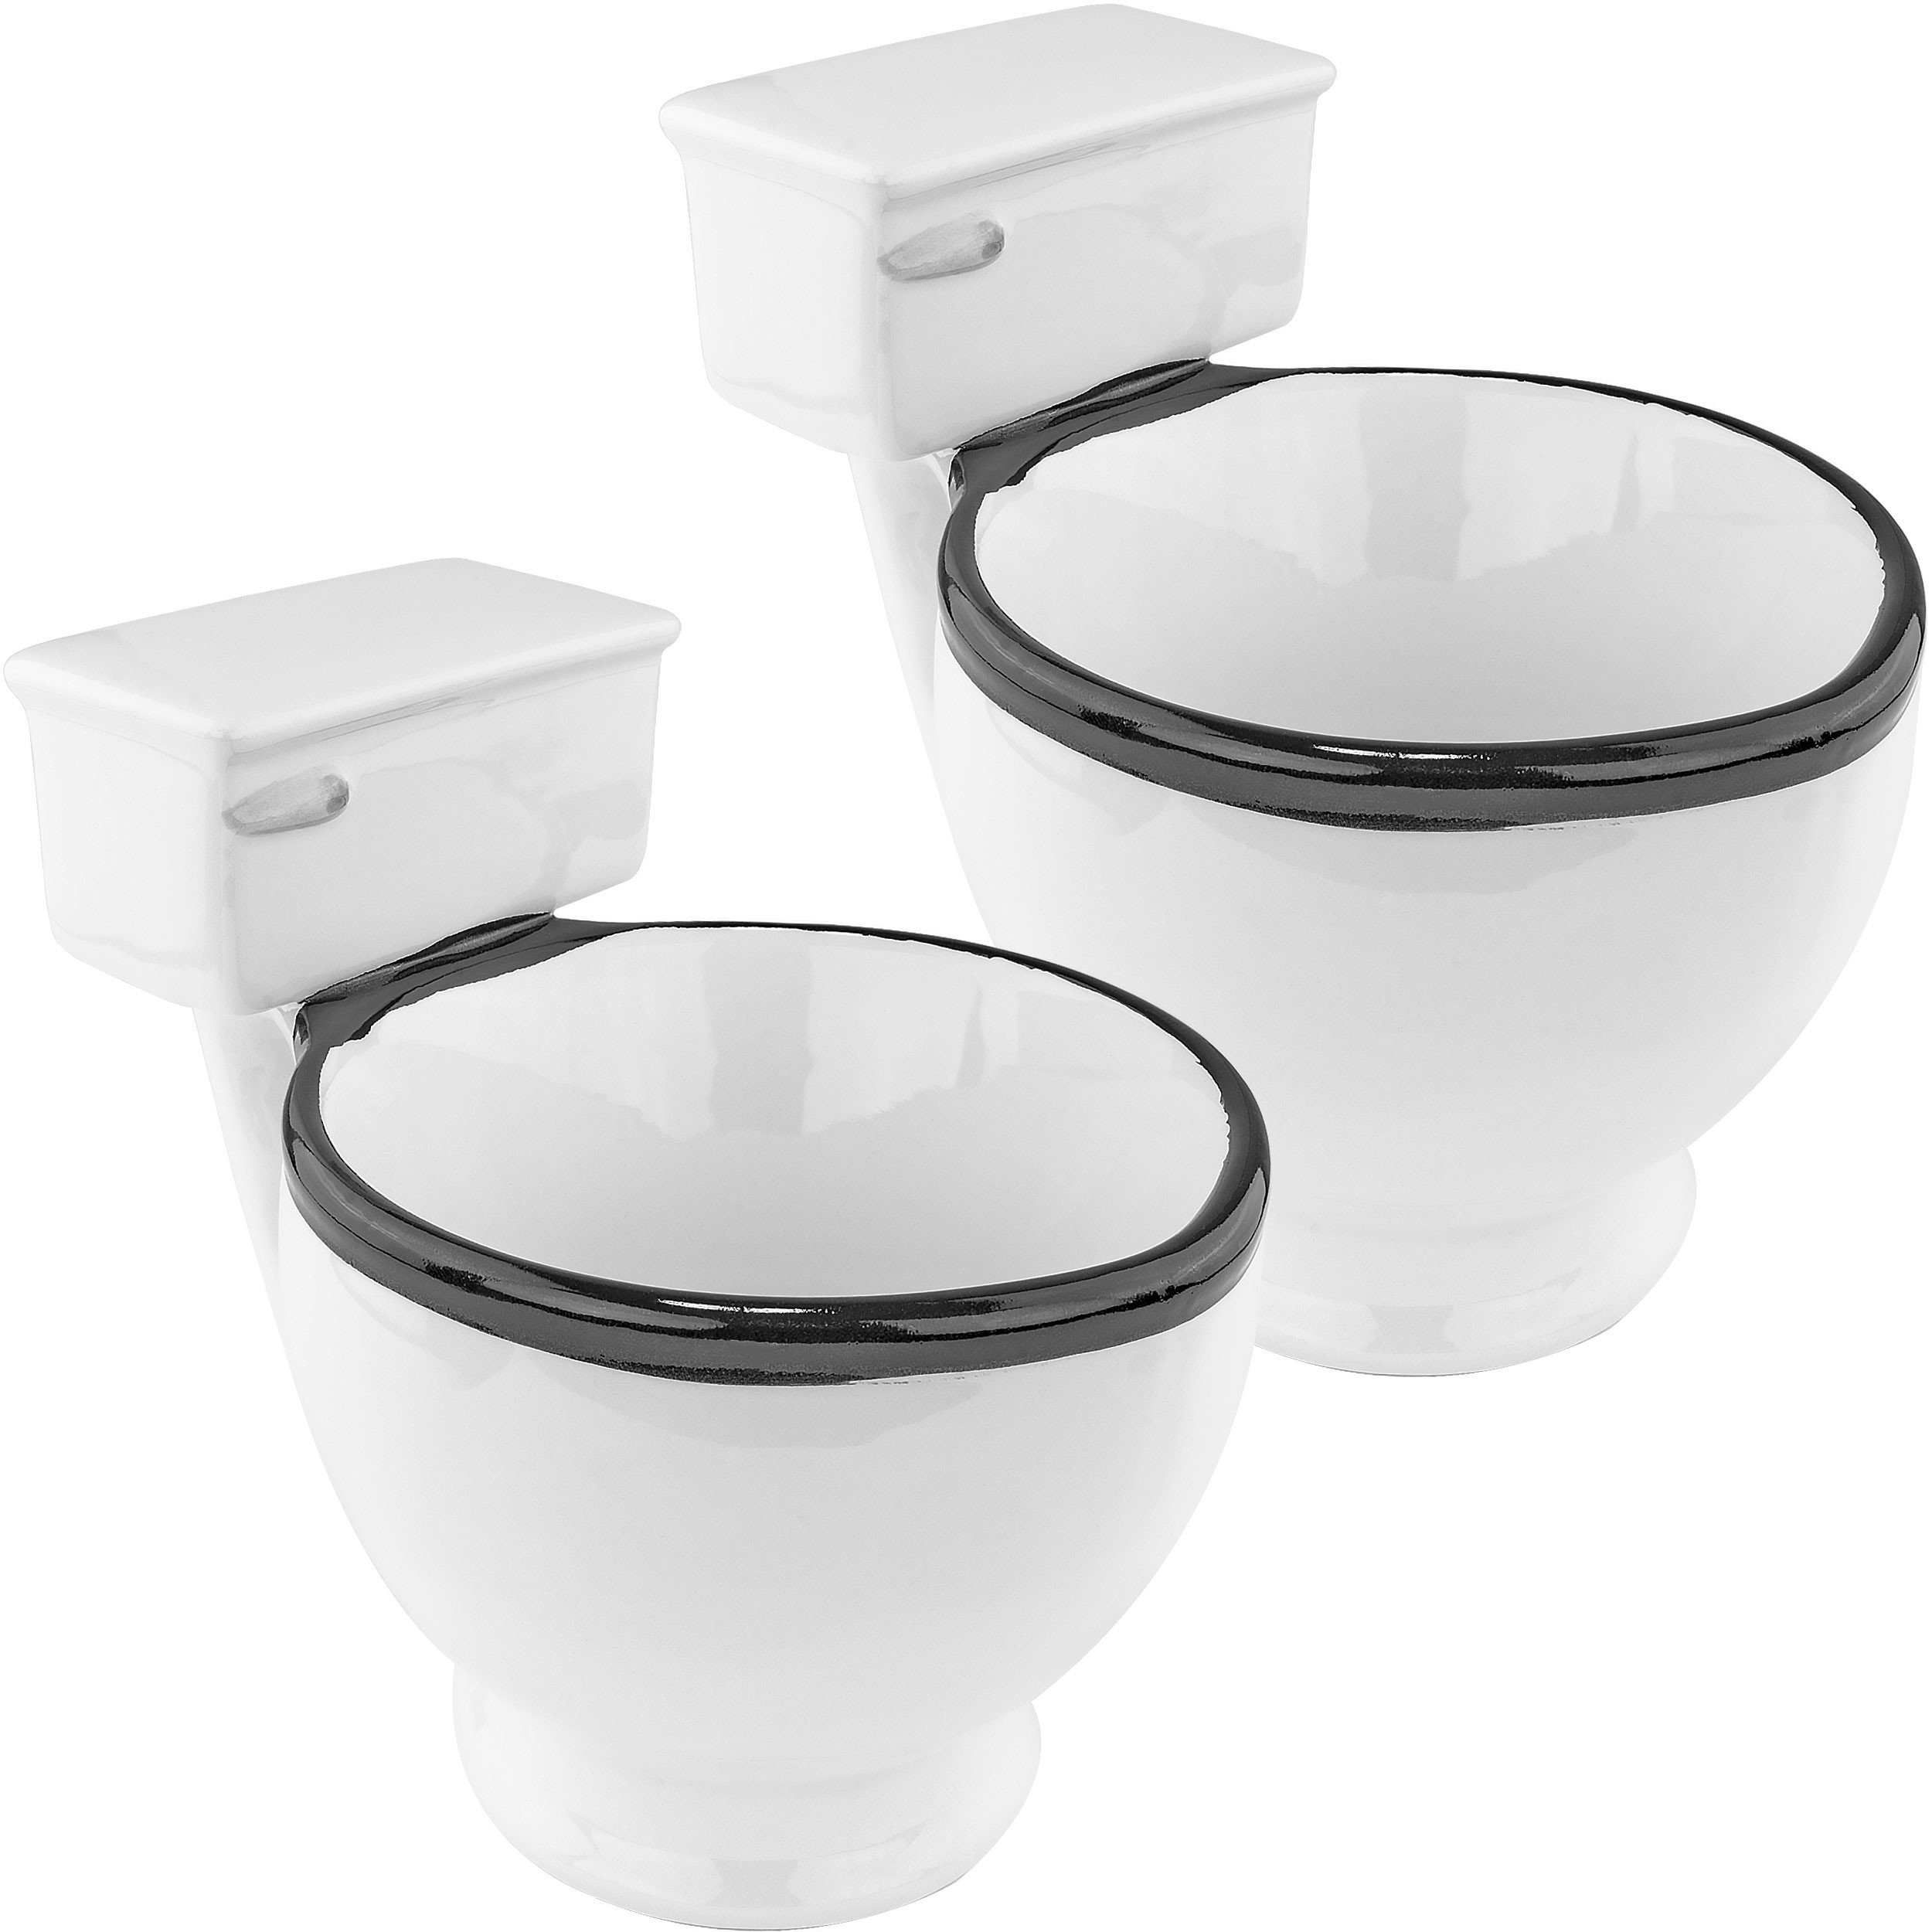 Ceramic Toilet Coffee Mug, 2 Pack